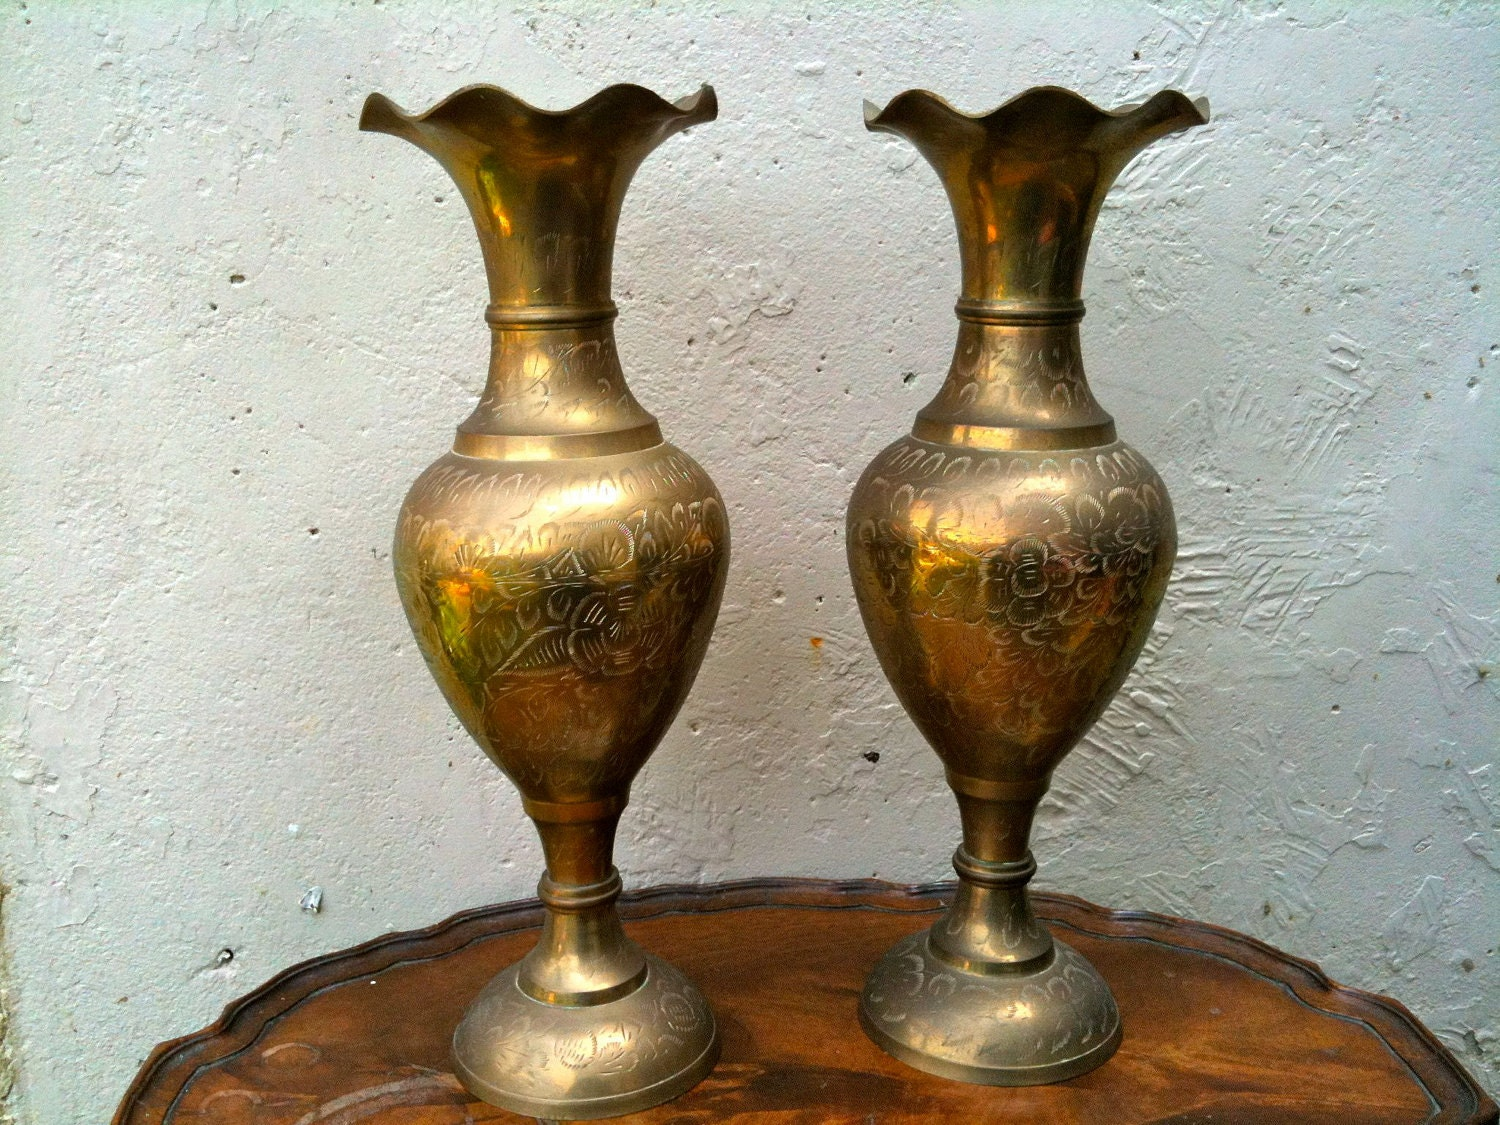 Antique brass vases pictures to pin on pinterest pinsdaddy vintage reviewsmspy